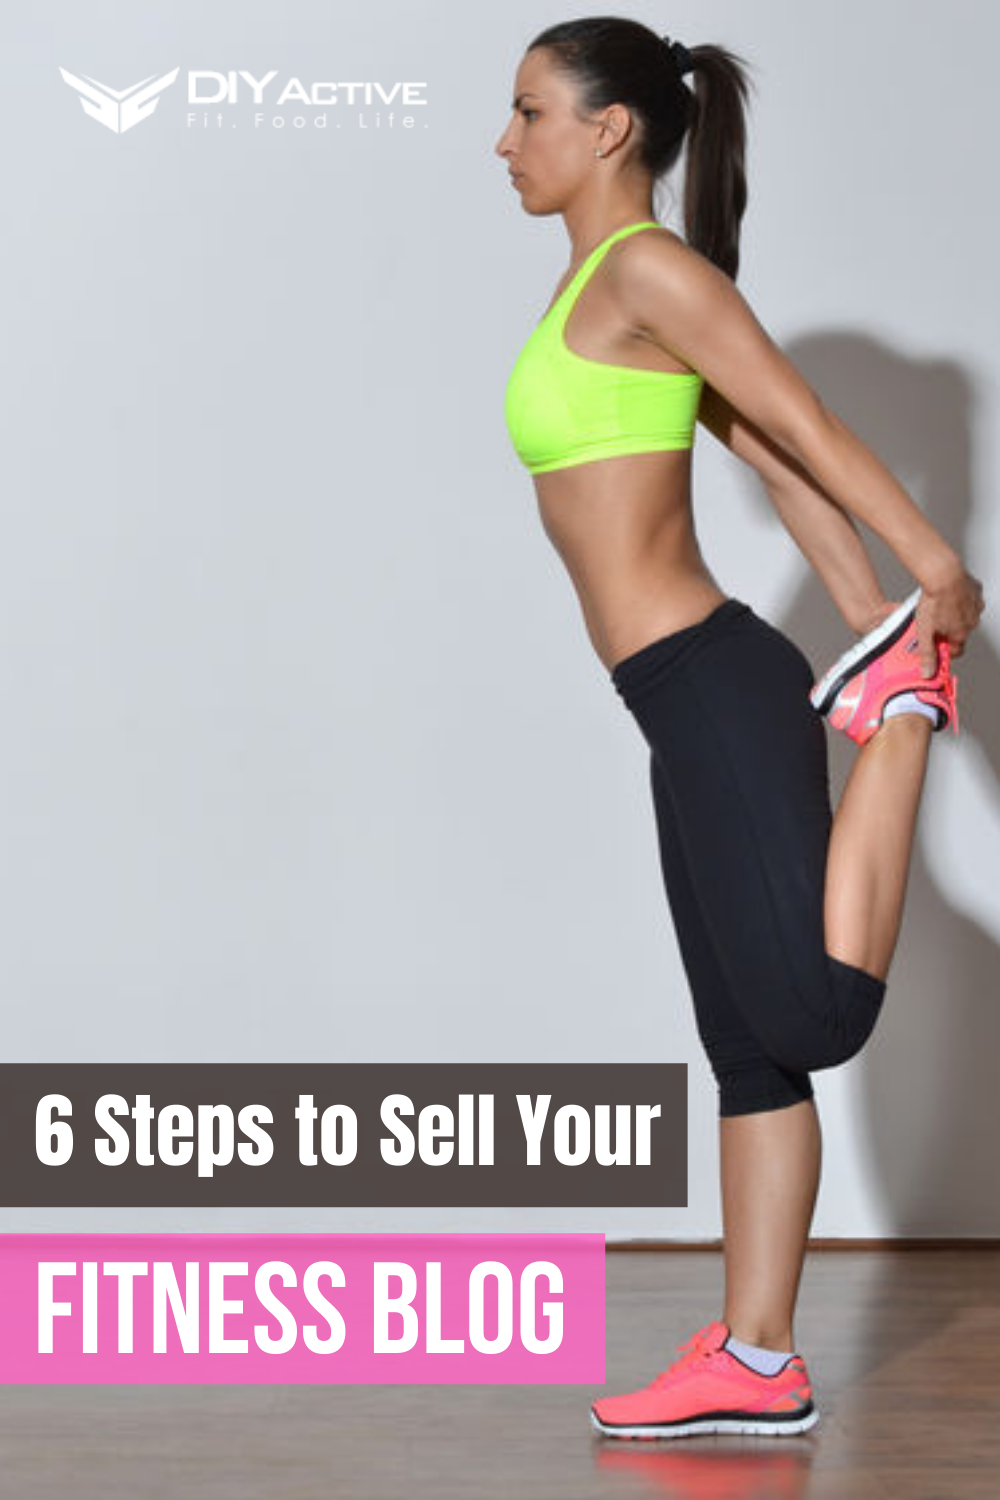 How to Sell a Fitness Website: 6 Steps to Sell Your Fitness Blog